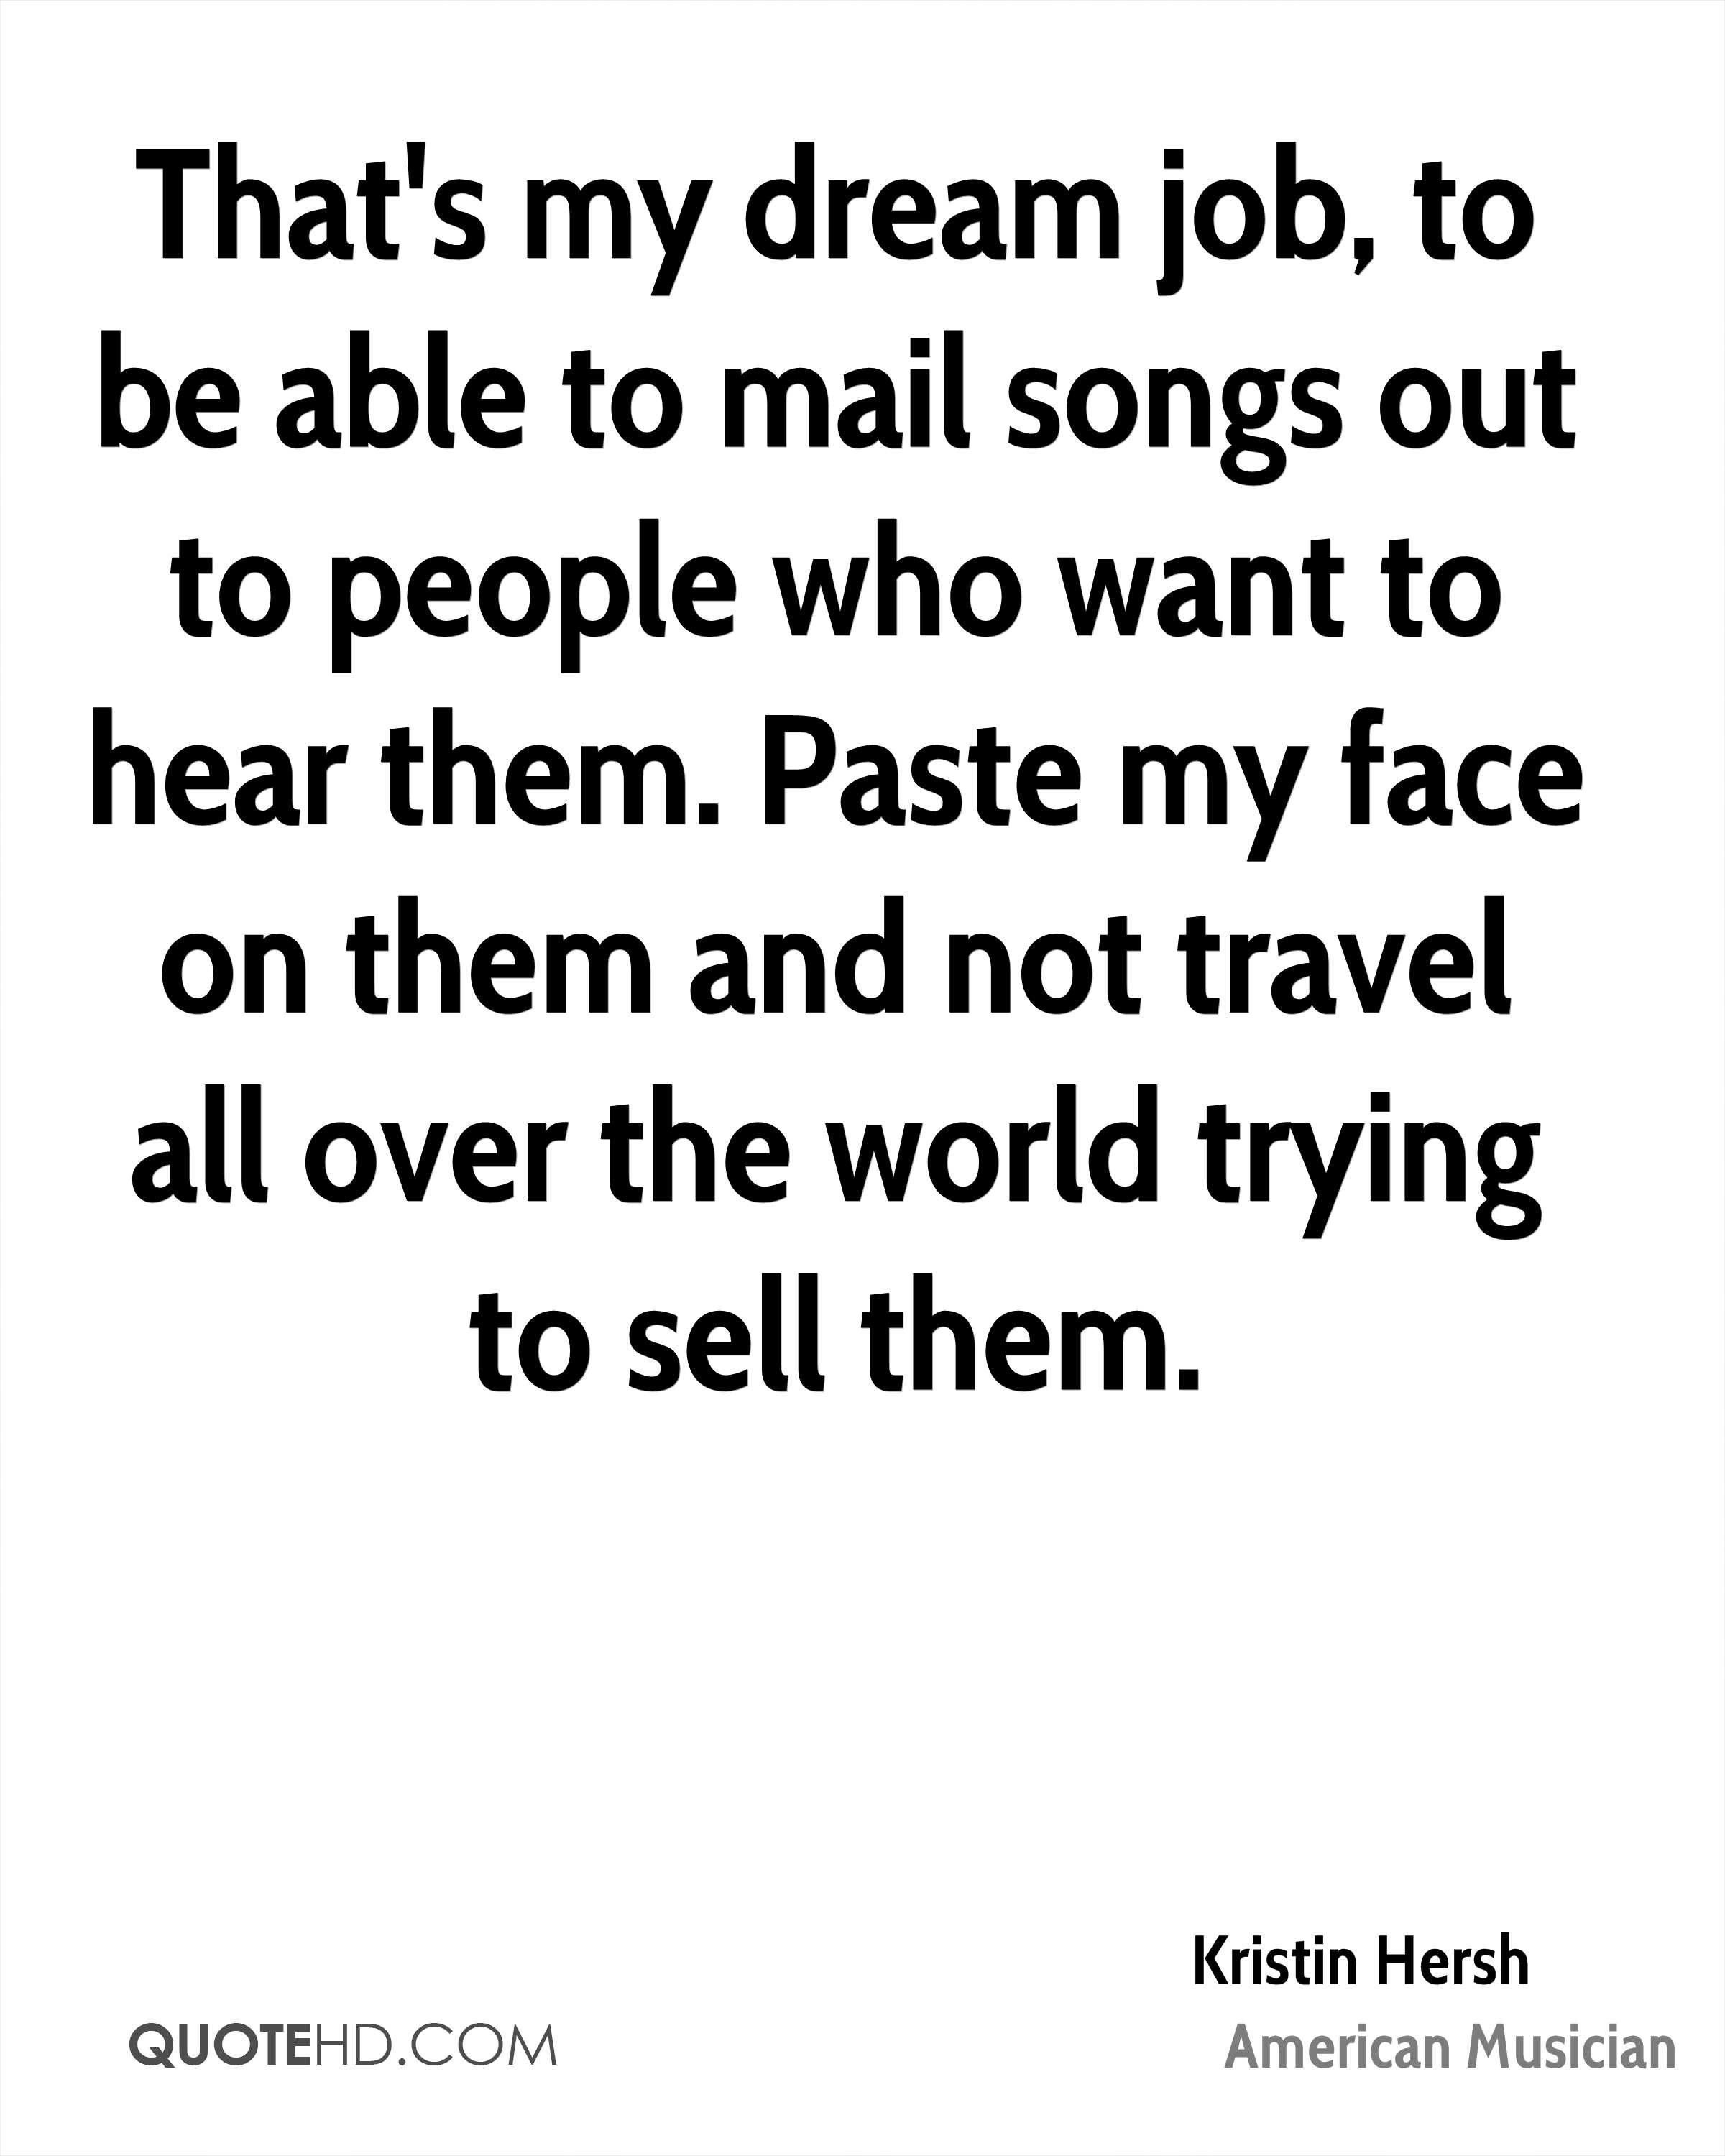 kristin hersh travel quotes quotehd that s my dream job to be able to mail songs out to people who want